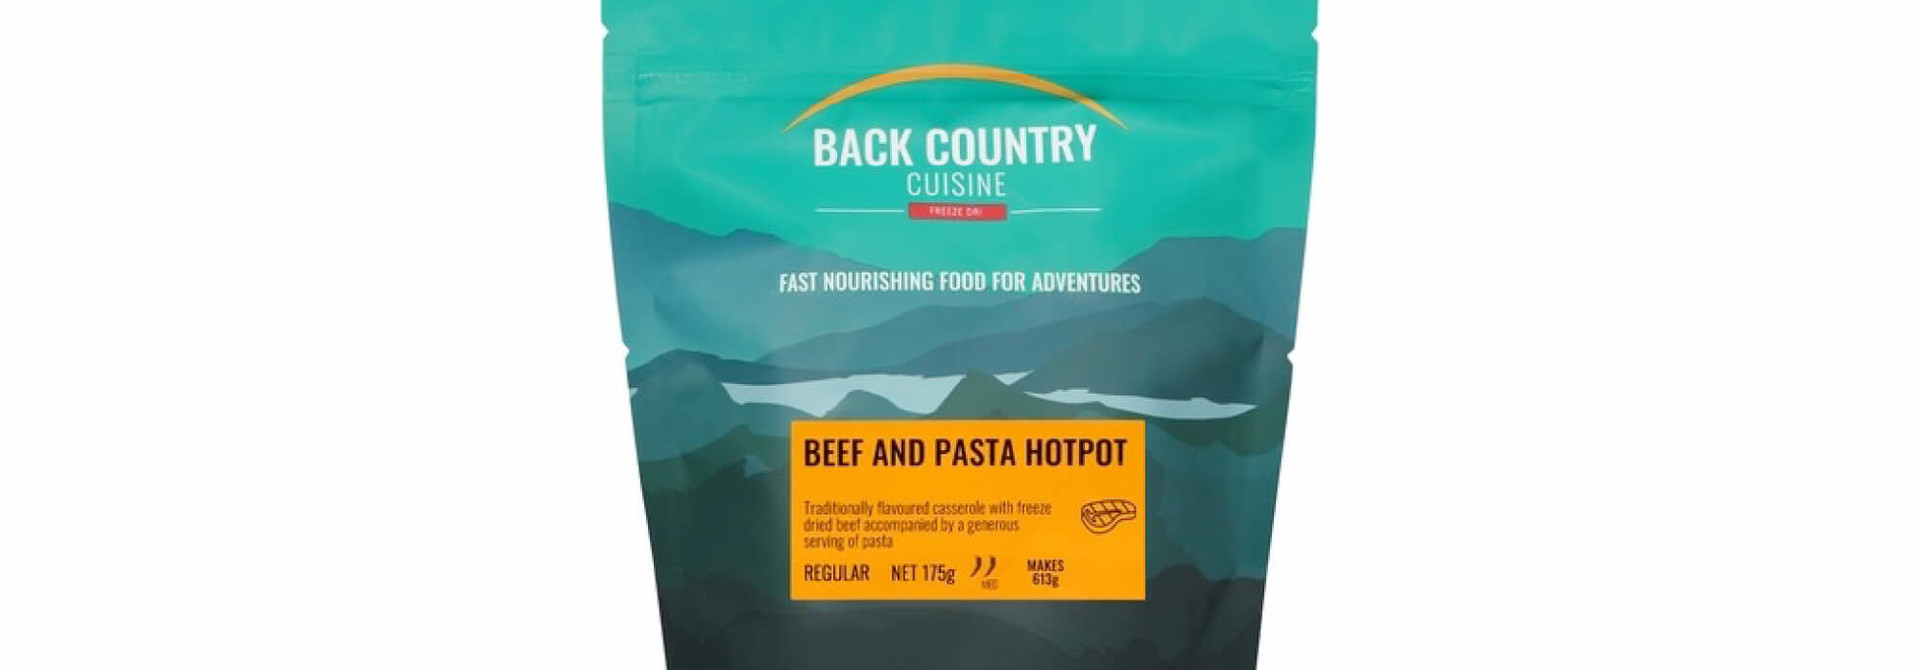 Beef And Pasta Hotpot Double